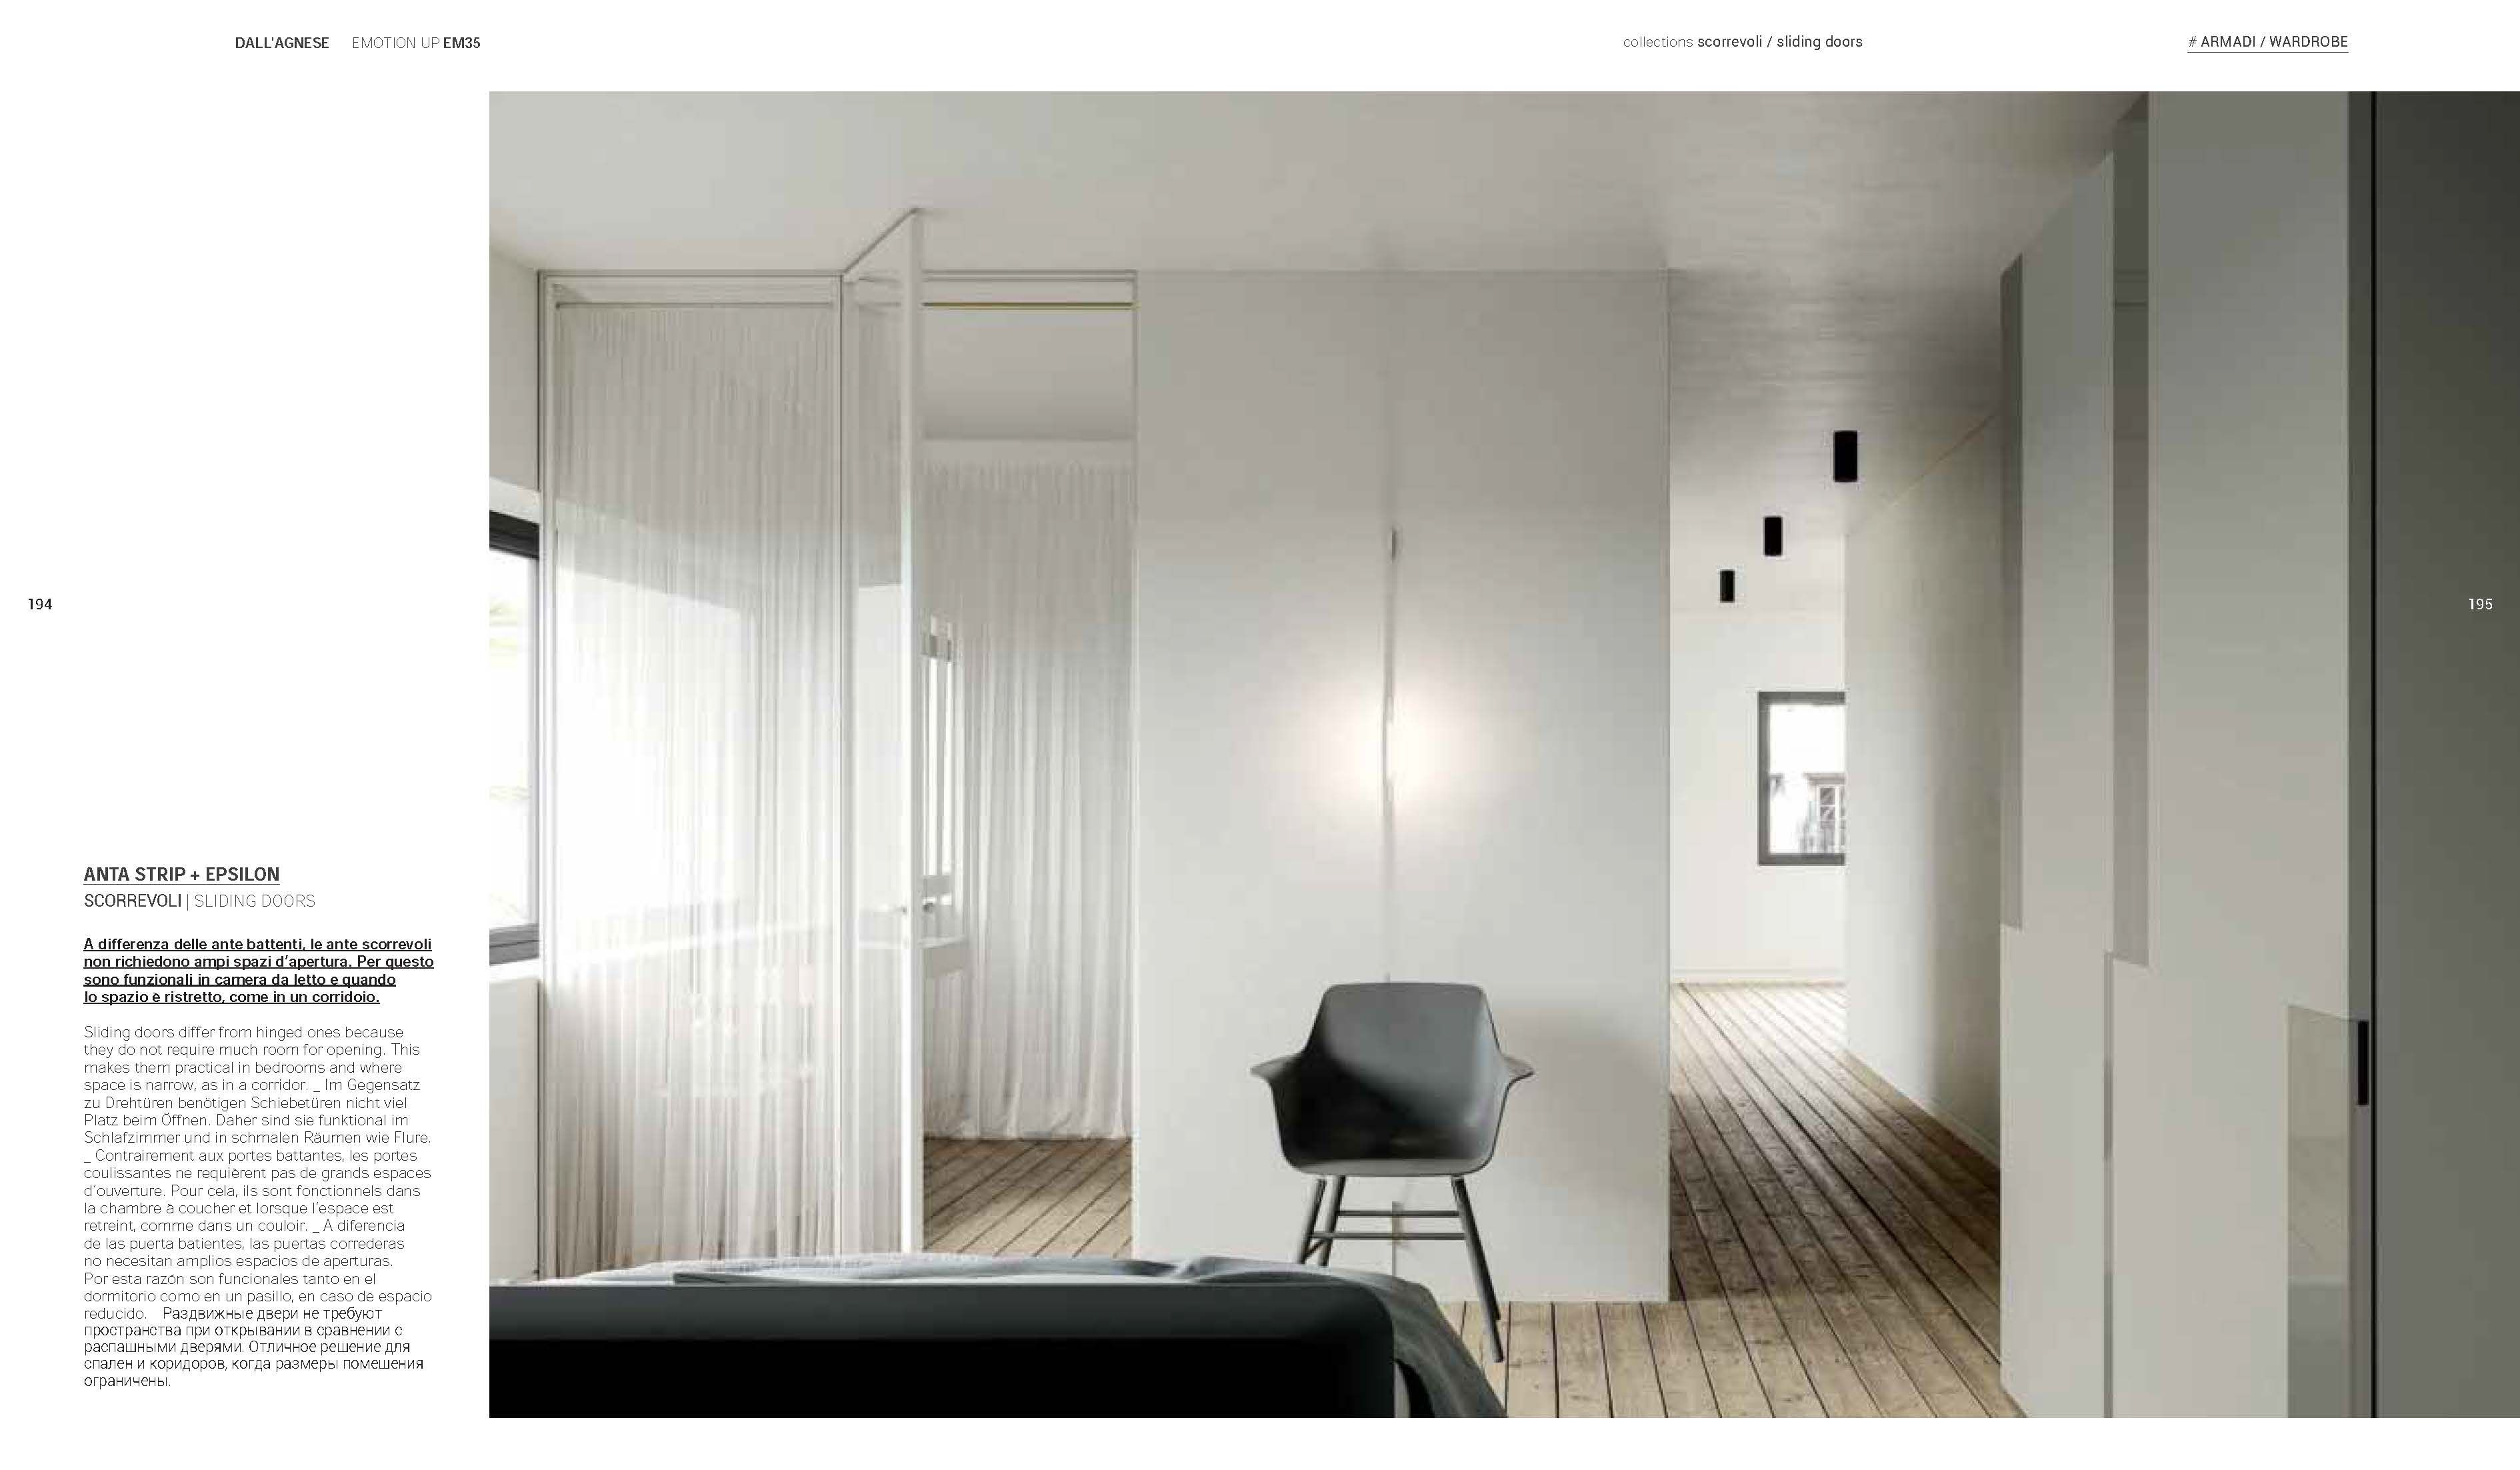 Armadi Laccati Bianchi dall'agnese the wardrobe collection 2019. sliding doors